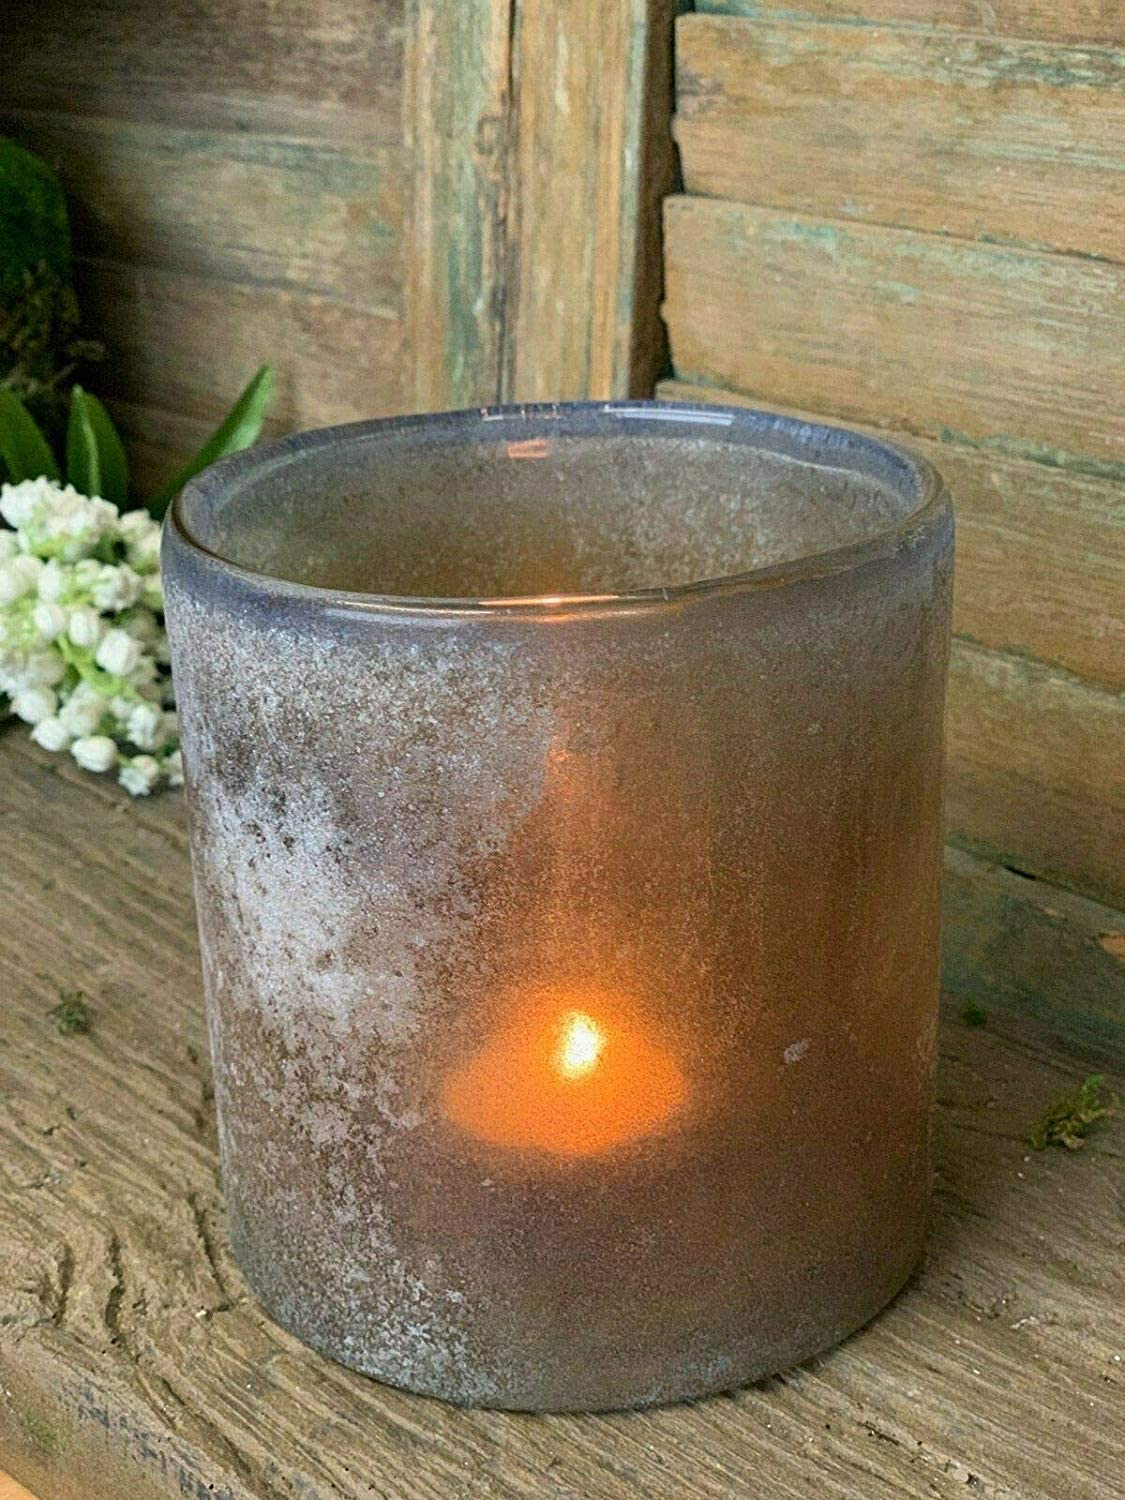 Homes on Trend Tea Light Votive Candle Holders Smokey Grey Glass Rustic Festive Wedding Table Decorations Centrepiece Settings Vintage Shabby Chic Tealight Holder Ornate Home Accessories